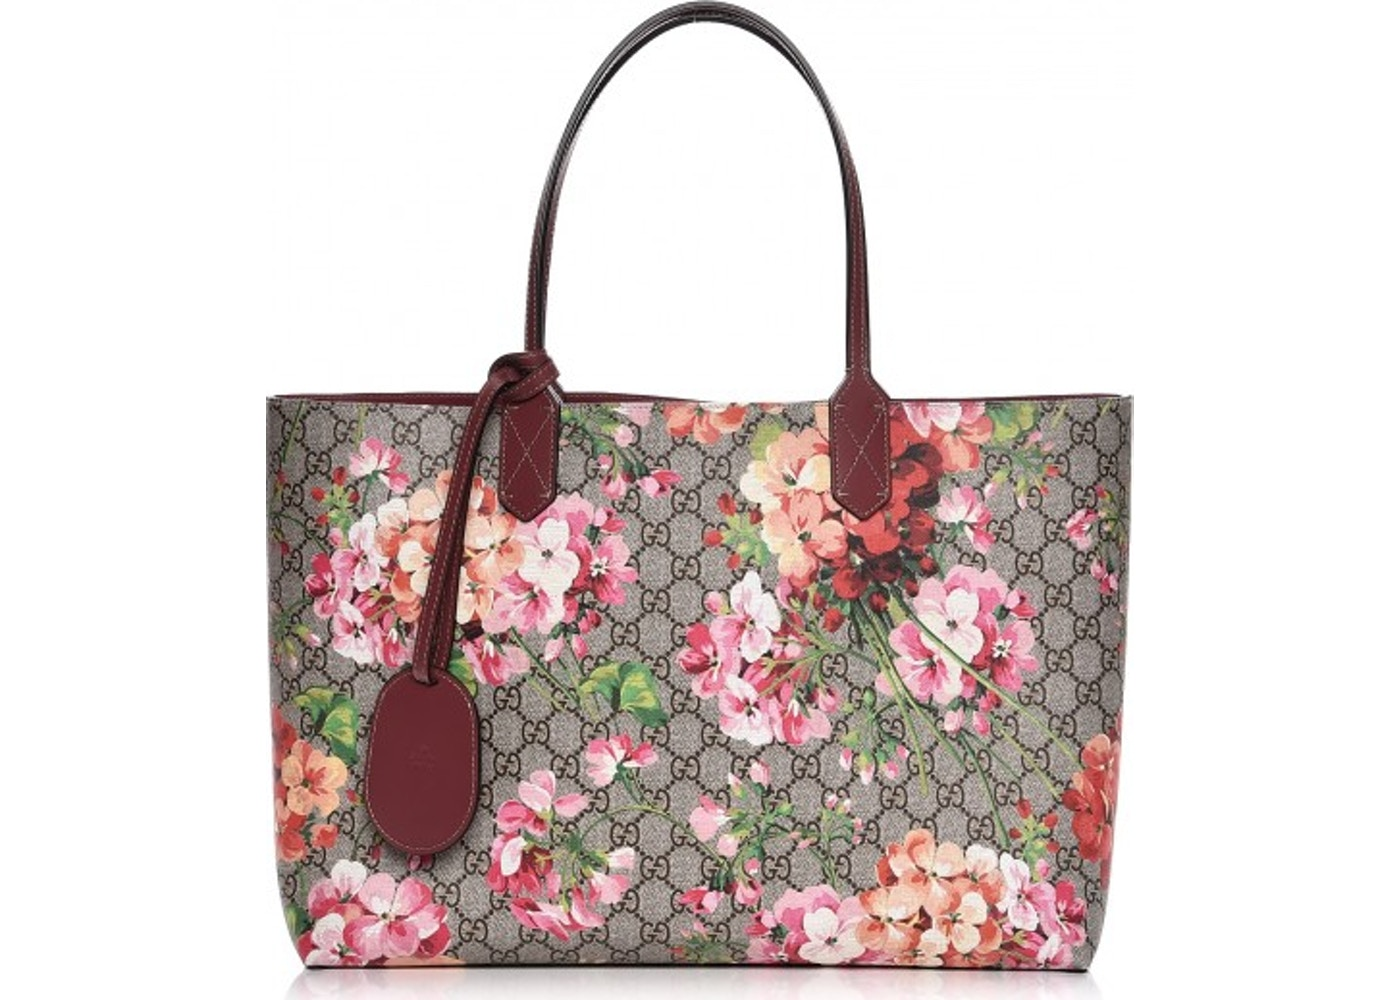 681758299 Gucci Reversible Tote Blooms GG Medium Pink/Green/Brown/Beige